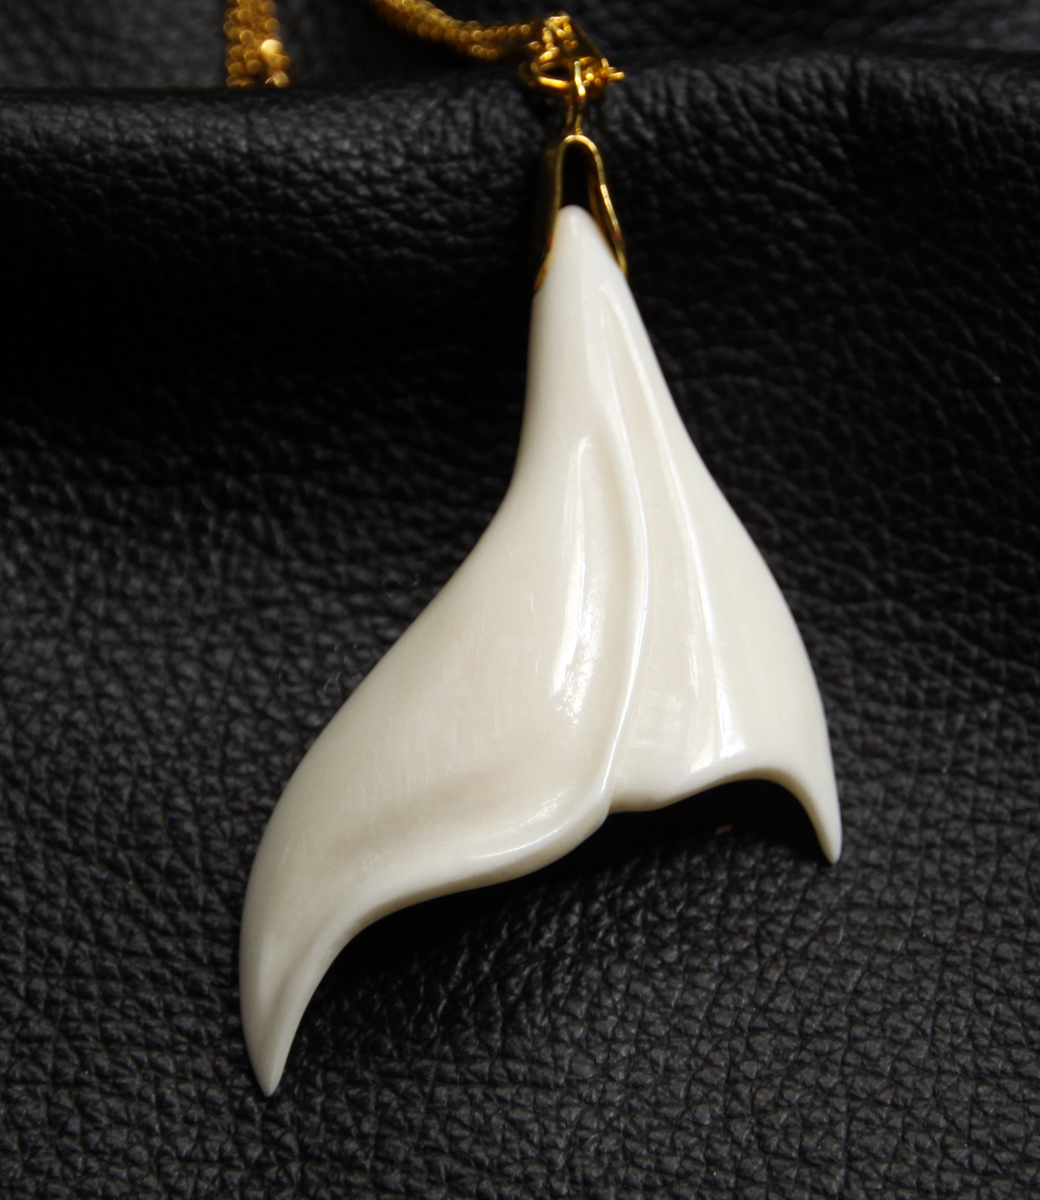 Bison bone earring